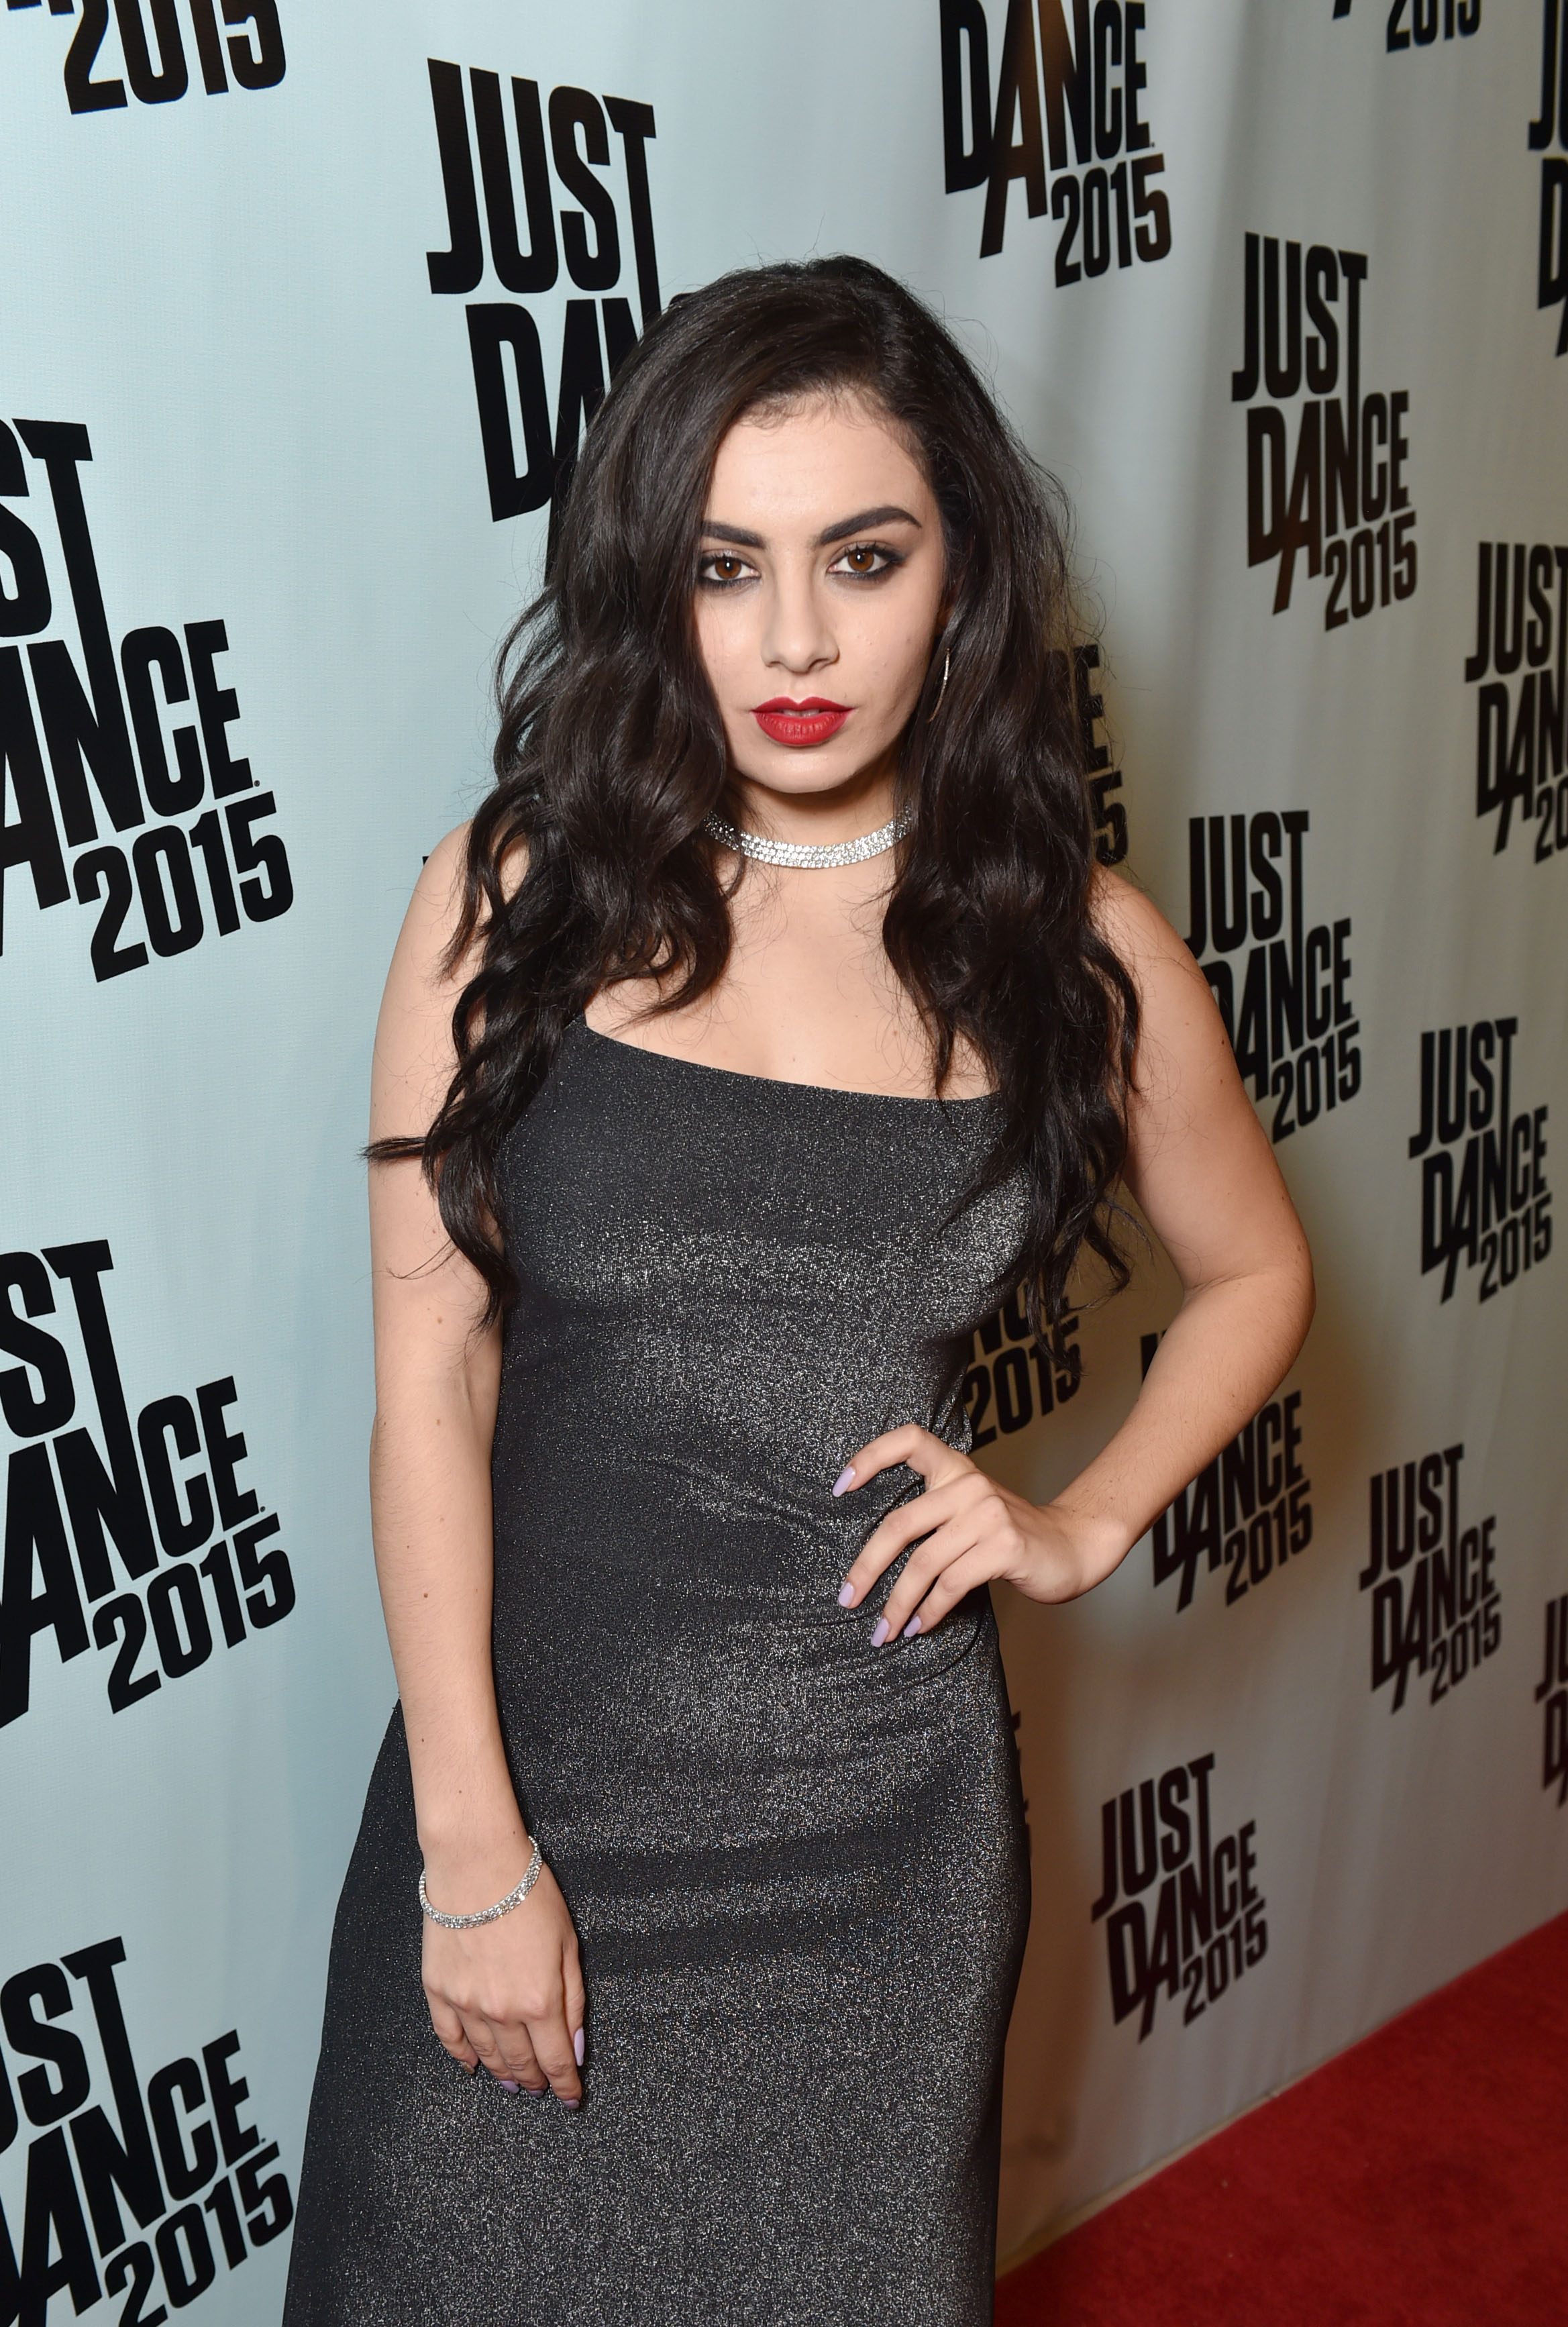 Charli XCX attends the Just Dance Homecoming to celebrate the launch of Just Dance 2015 at Aspire Pacific Academy on Wednesday, Oct. 22, 2014, in Huntington Park, Calif. (Photo by John Shearer/Invision for Ubisoft/AP Images)